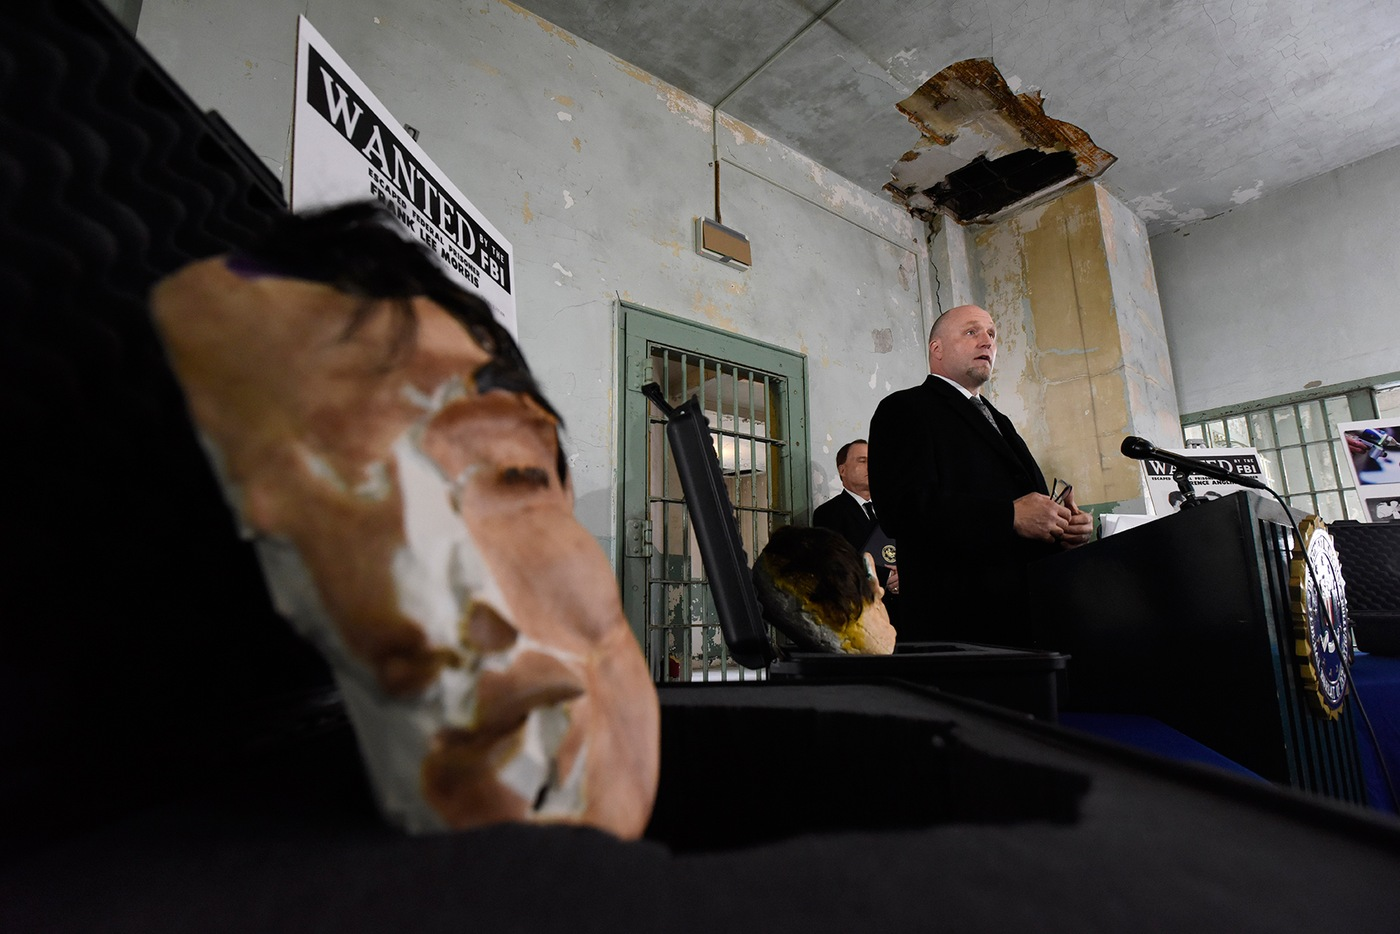 FBI San Francisco Special Agent in Charge John F. Bennett speaks to members of the media during a November 15, 2018 press conference on Alcatraz Island, where the FBI presented the Golden Gate National Recreation Area with 3D printed replicas of the decoy heads used by Frank Morris, Allen Clayton West, and John and Clarence Anglin during their escape from Alcatraz in 1962.